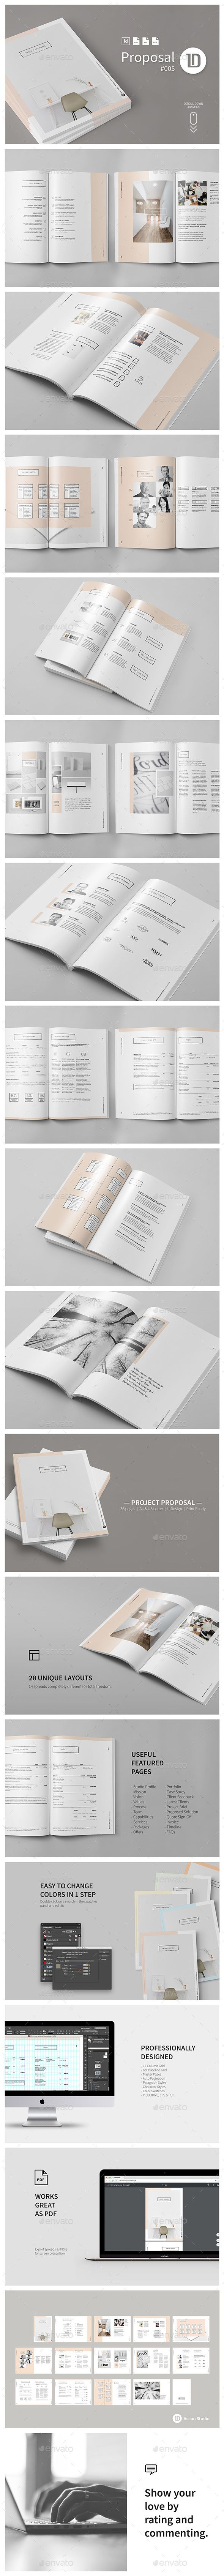 Project Proposal Template 005 Minimalist  — EPS Template #indesign #a4 #form…